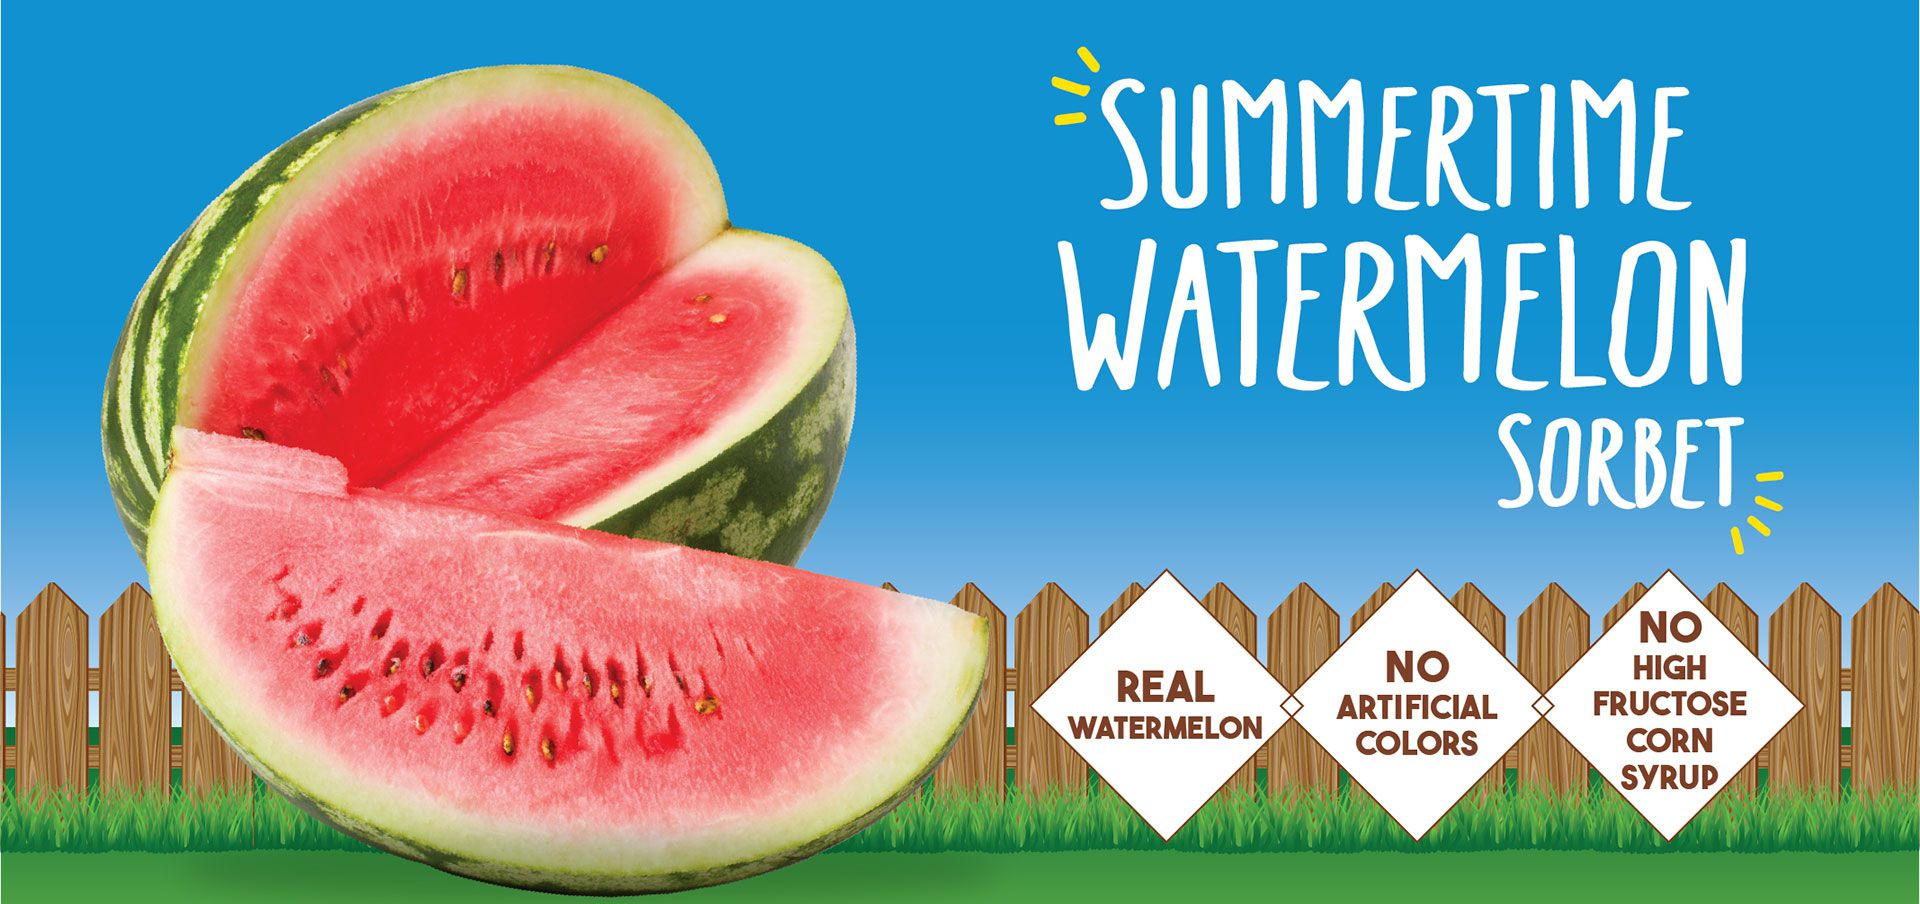 summertime watermelon sorbet label image